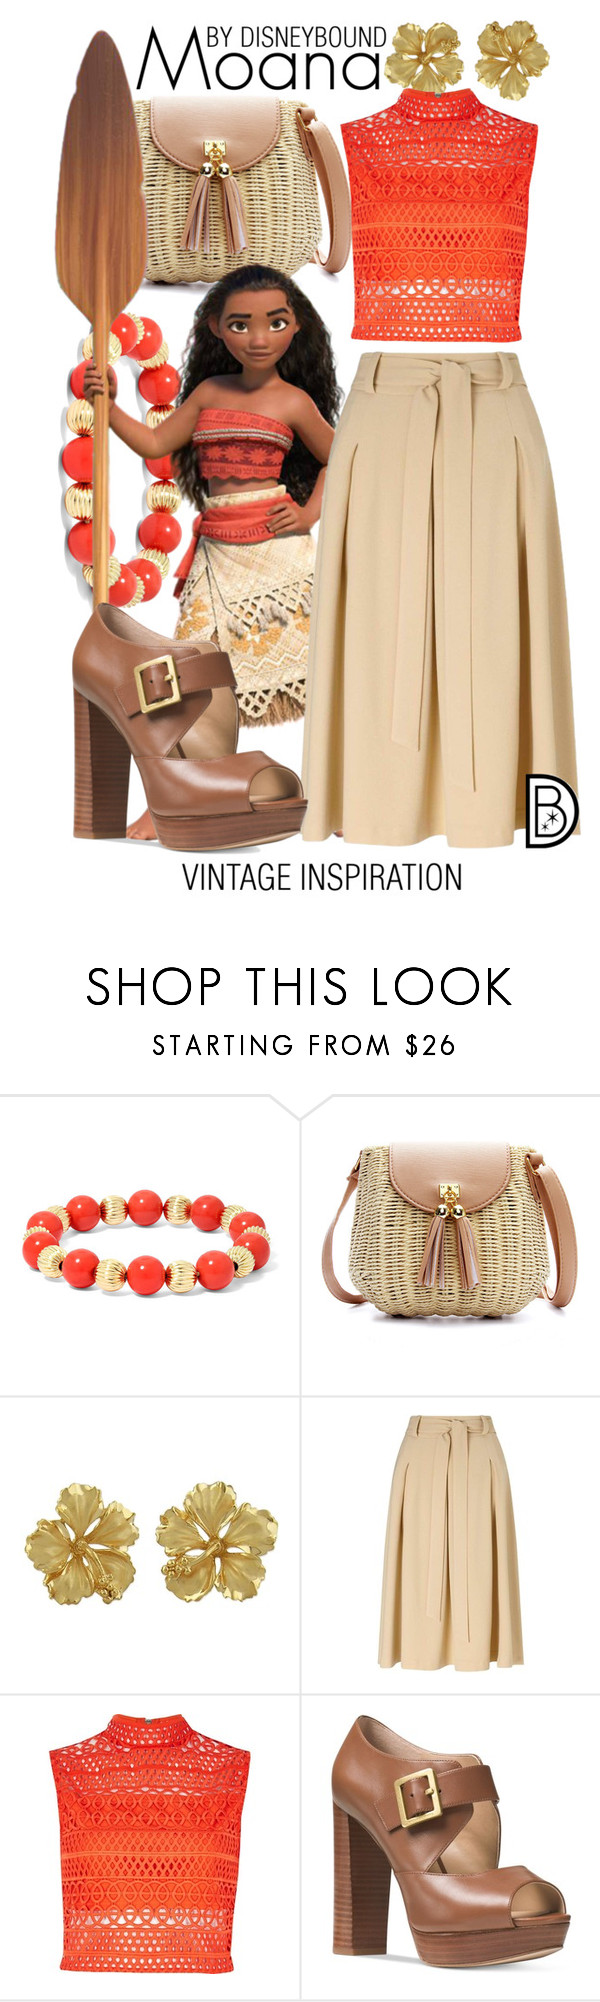 """Moana"" by leslieakay ❤ liked on Polyvore featuring Monet, Miss Selfridge, River Island, Michael Kors, vintage, disney, disneybound and disneycharacter"